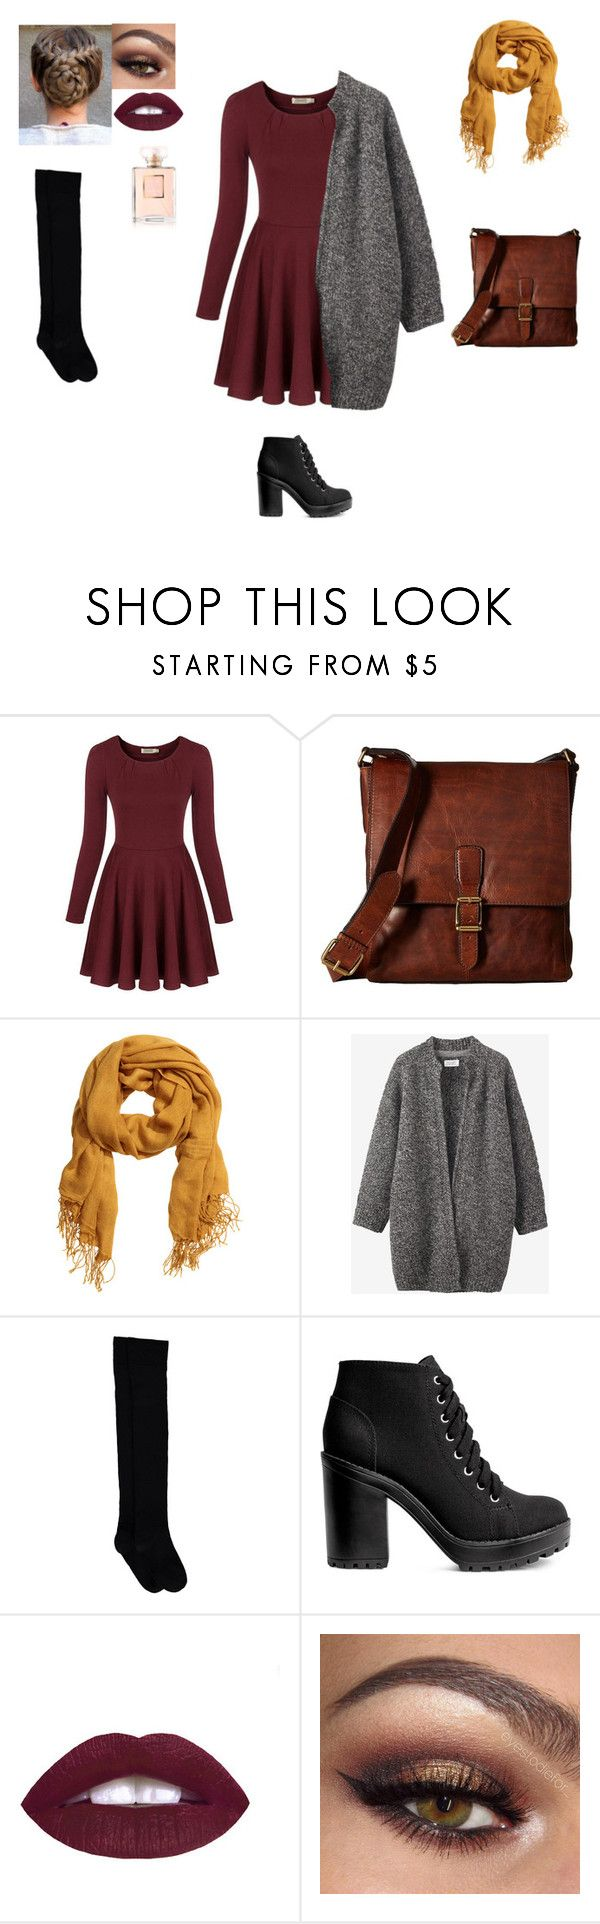 """Fall Outfit"" by hannahchristine18 on Polyvore featuring Chicnova Fashion, Frye, H&M, Toast and Chanel"